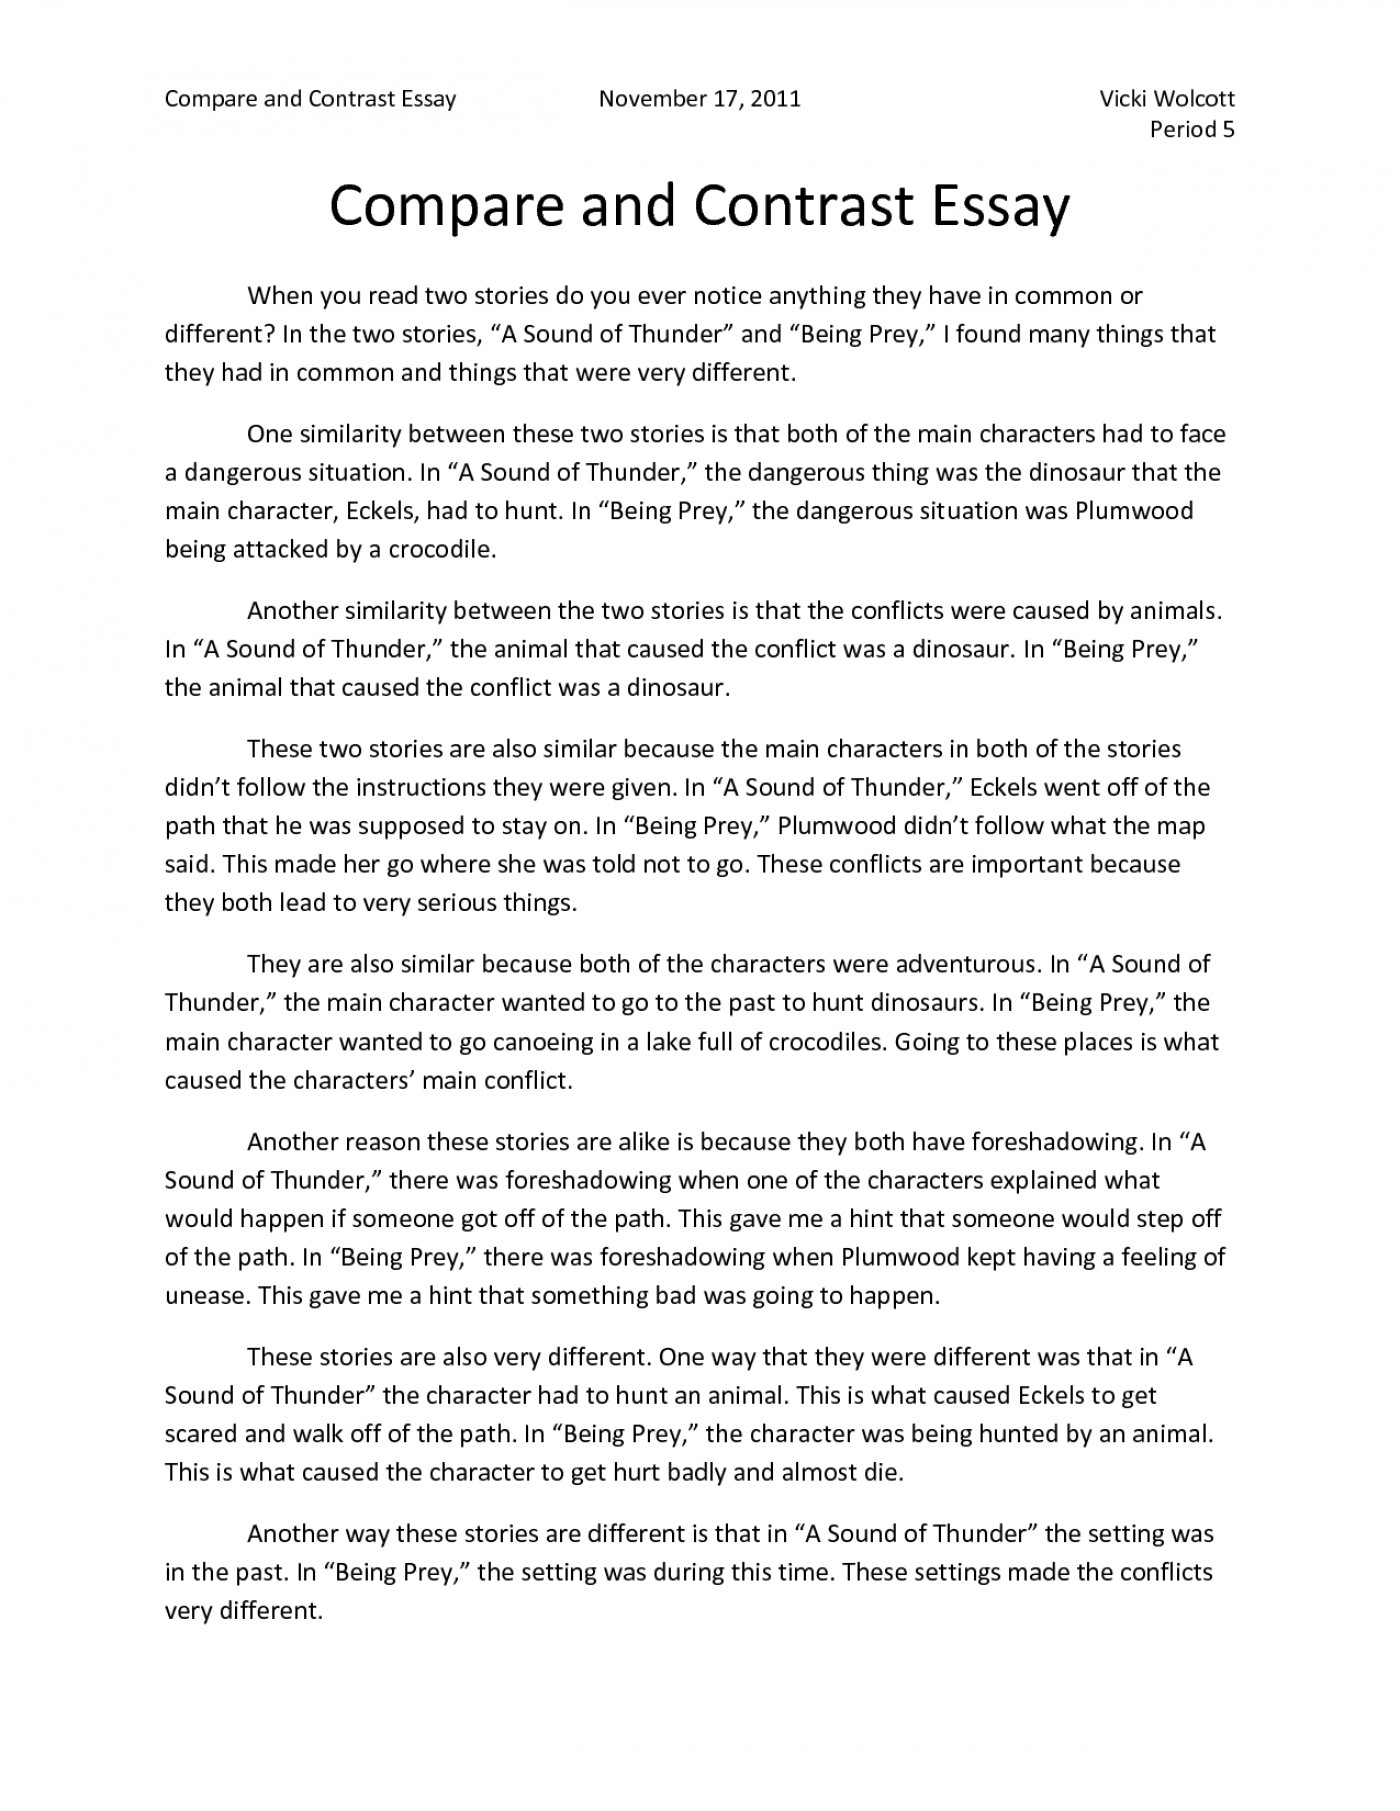 004 Essay Example Compare And Contrast Gallery Template Drawing Art Throughout College Examples Introduction Question Scholarship Free Edexcel Conclusion Frightening Sample 4th Grade Paragraph Ideas 1400